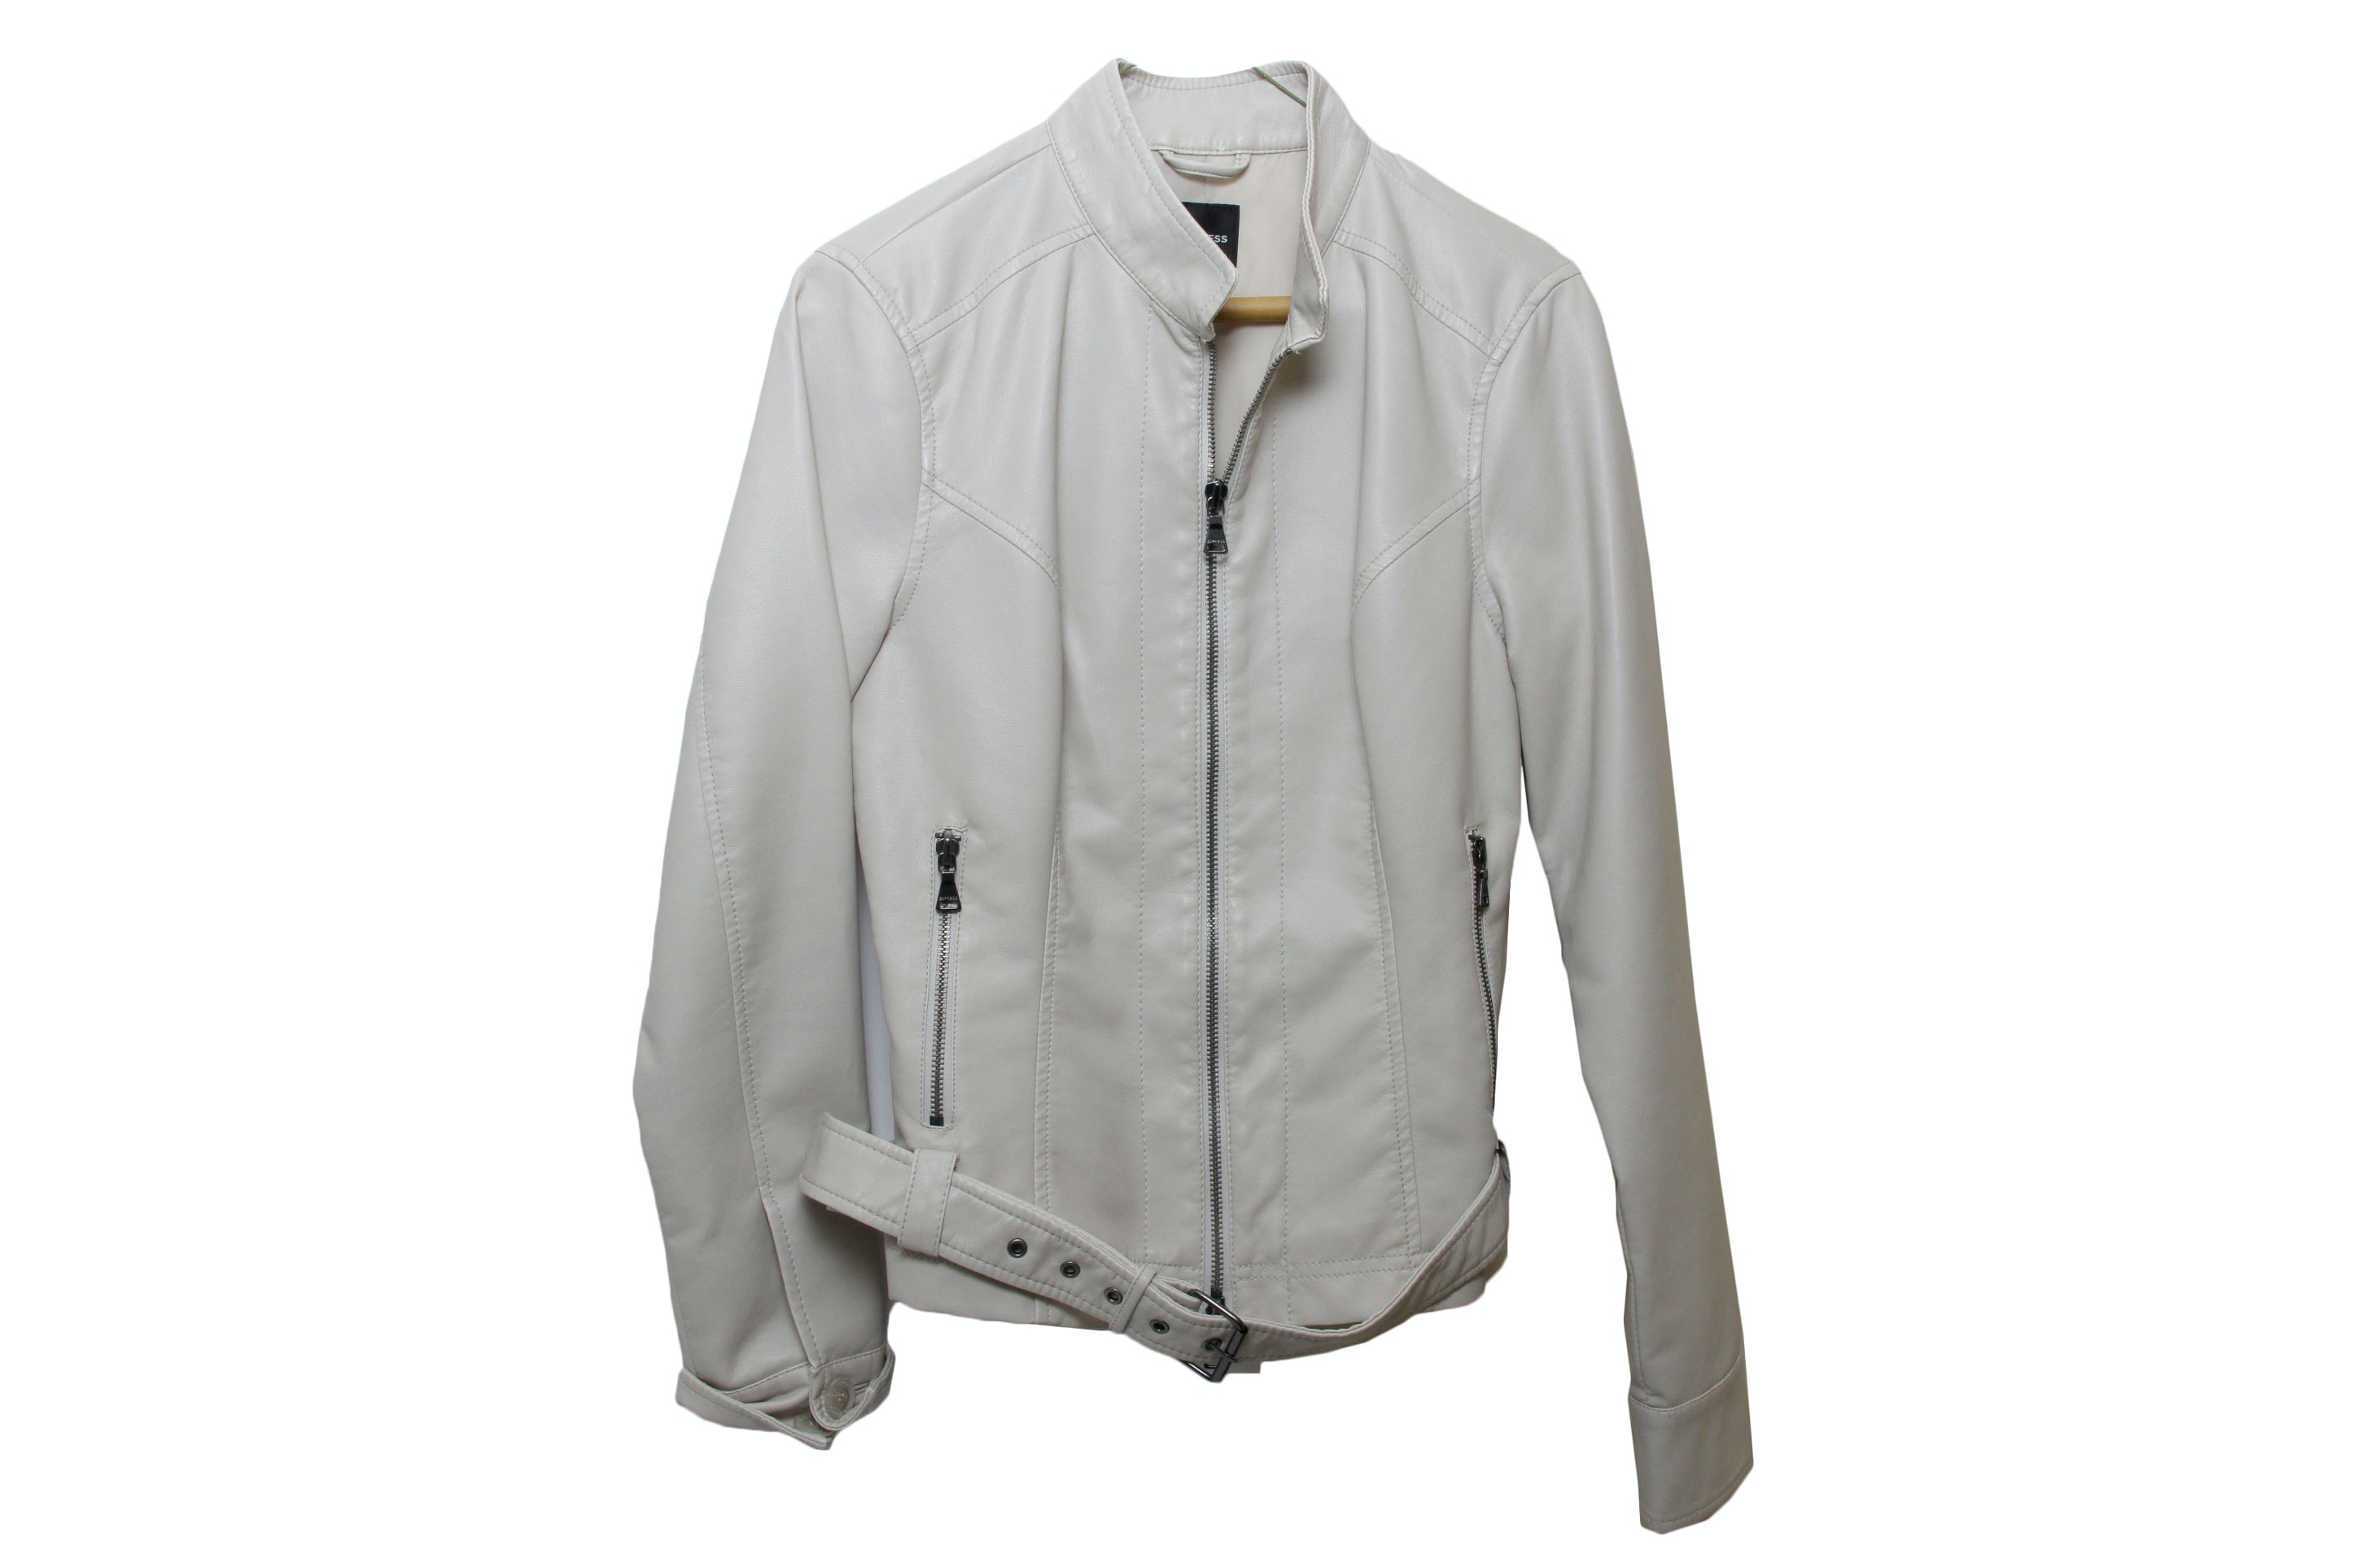 Express Off White Faux Leather Jacket